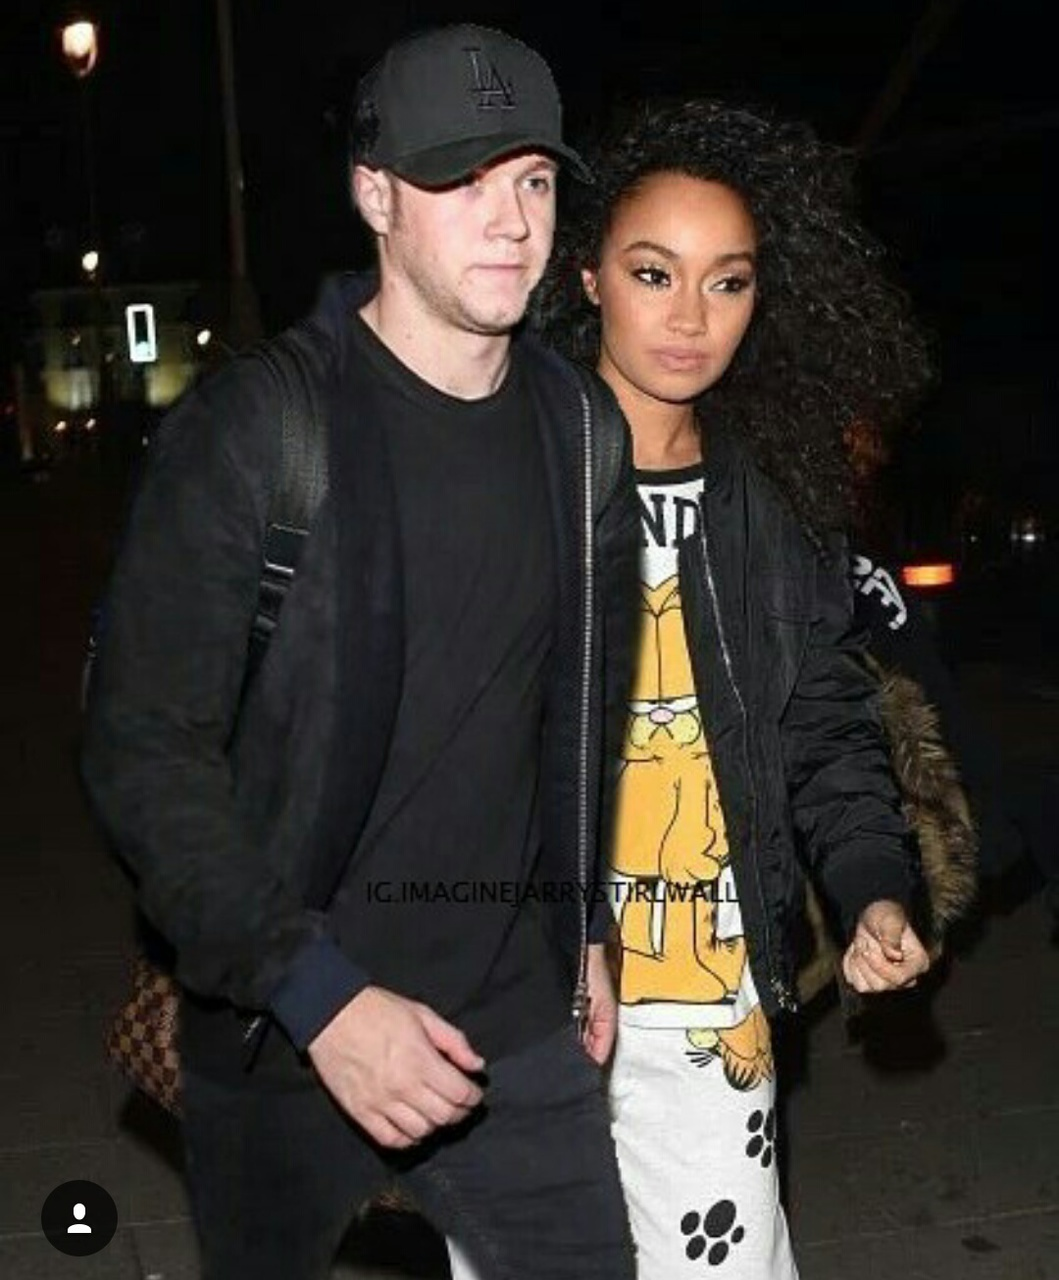 niall horan, leigh-anne pinnock, and little mix image